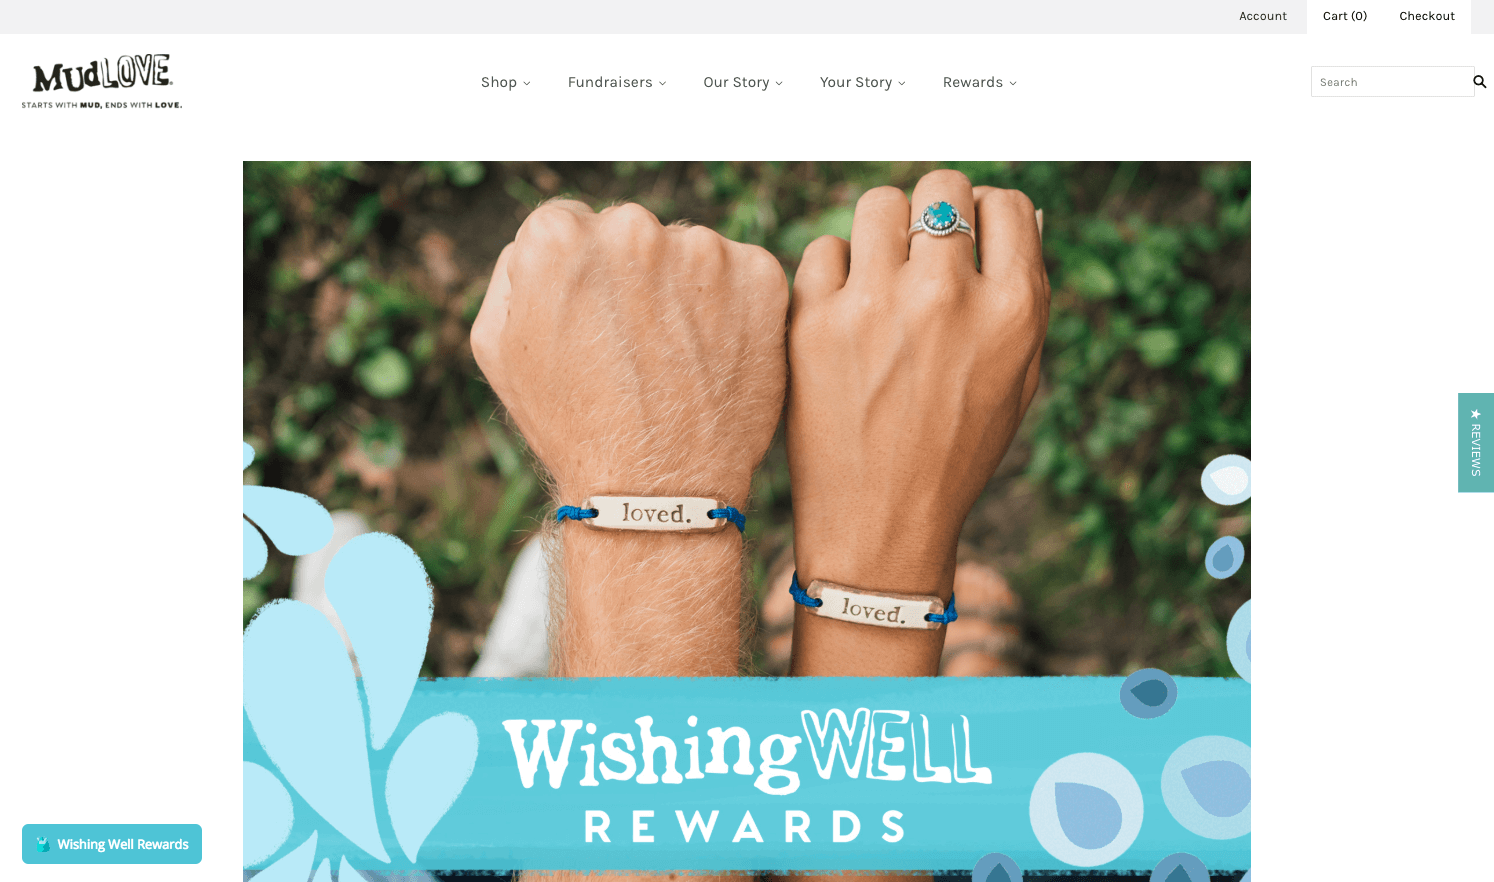 The Best eCommerce Loyalty Programs - Mudlove Wishing Well Rewards